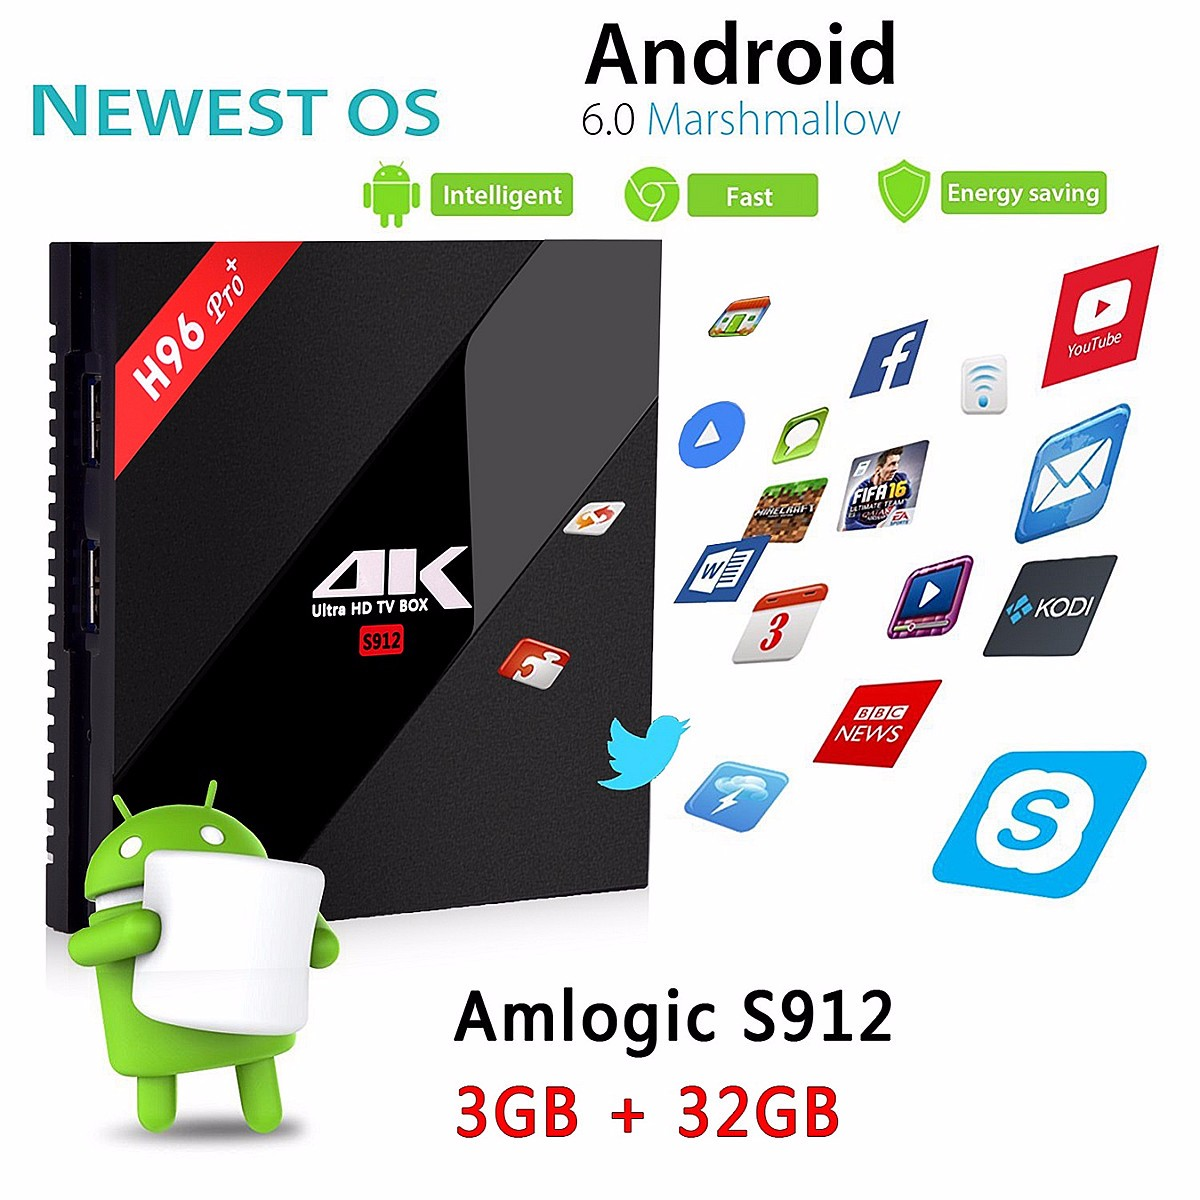 H96 PRO Plus Amlogic S912 Octa Core 3G +32G Android 6.0 WiFi BT4.1 TV Box , US Plug